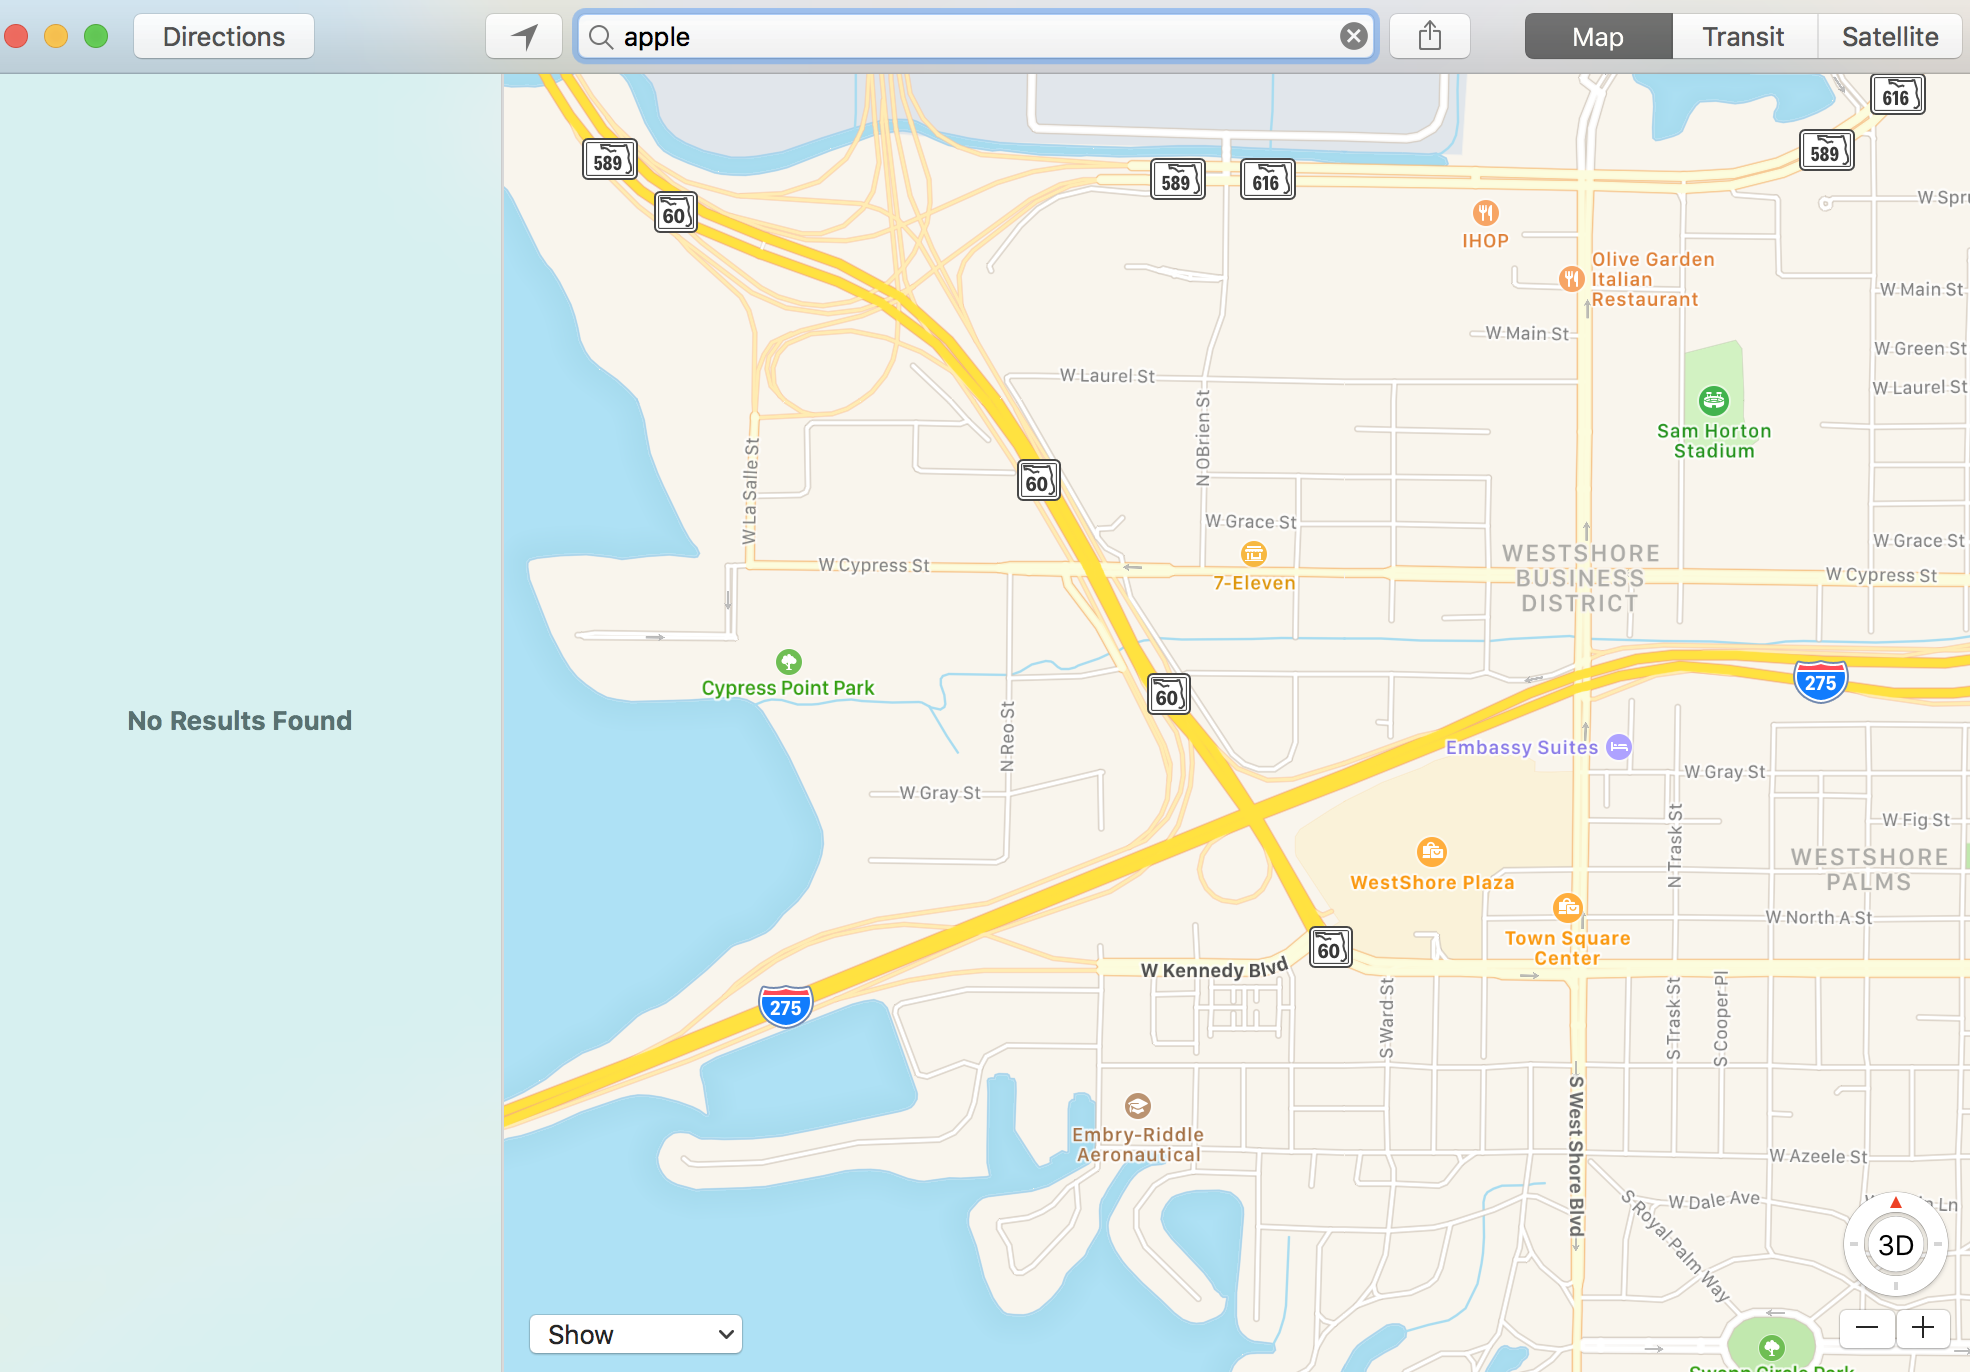 Huge Apple Maps outage prevents all users from searching, getting directions